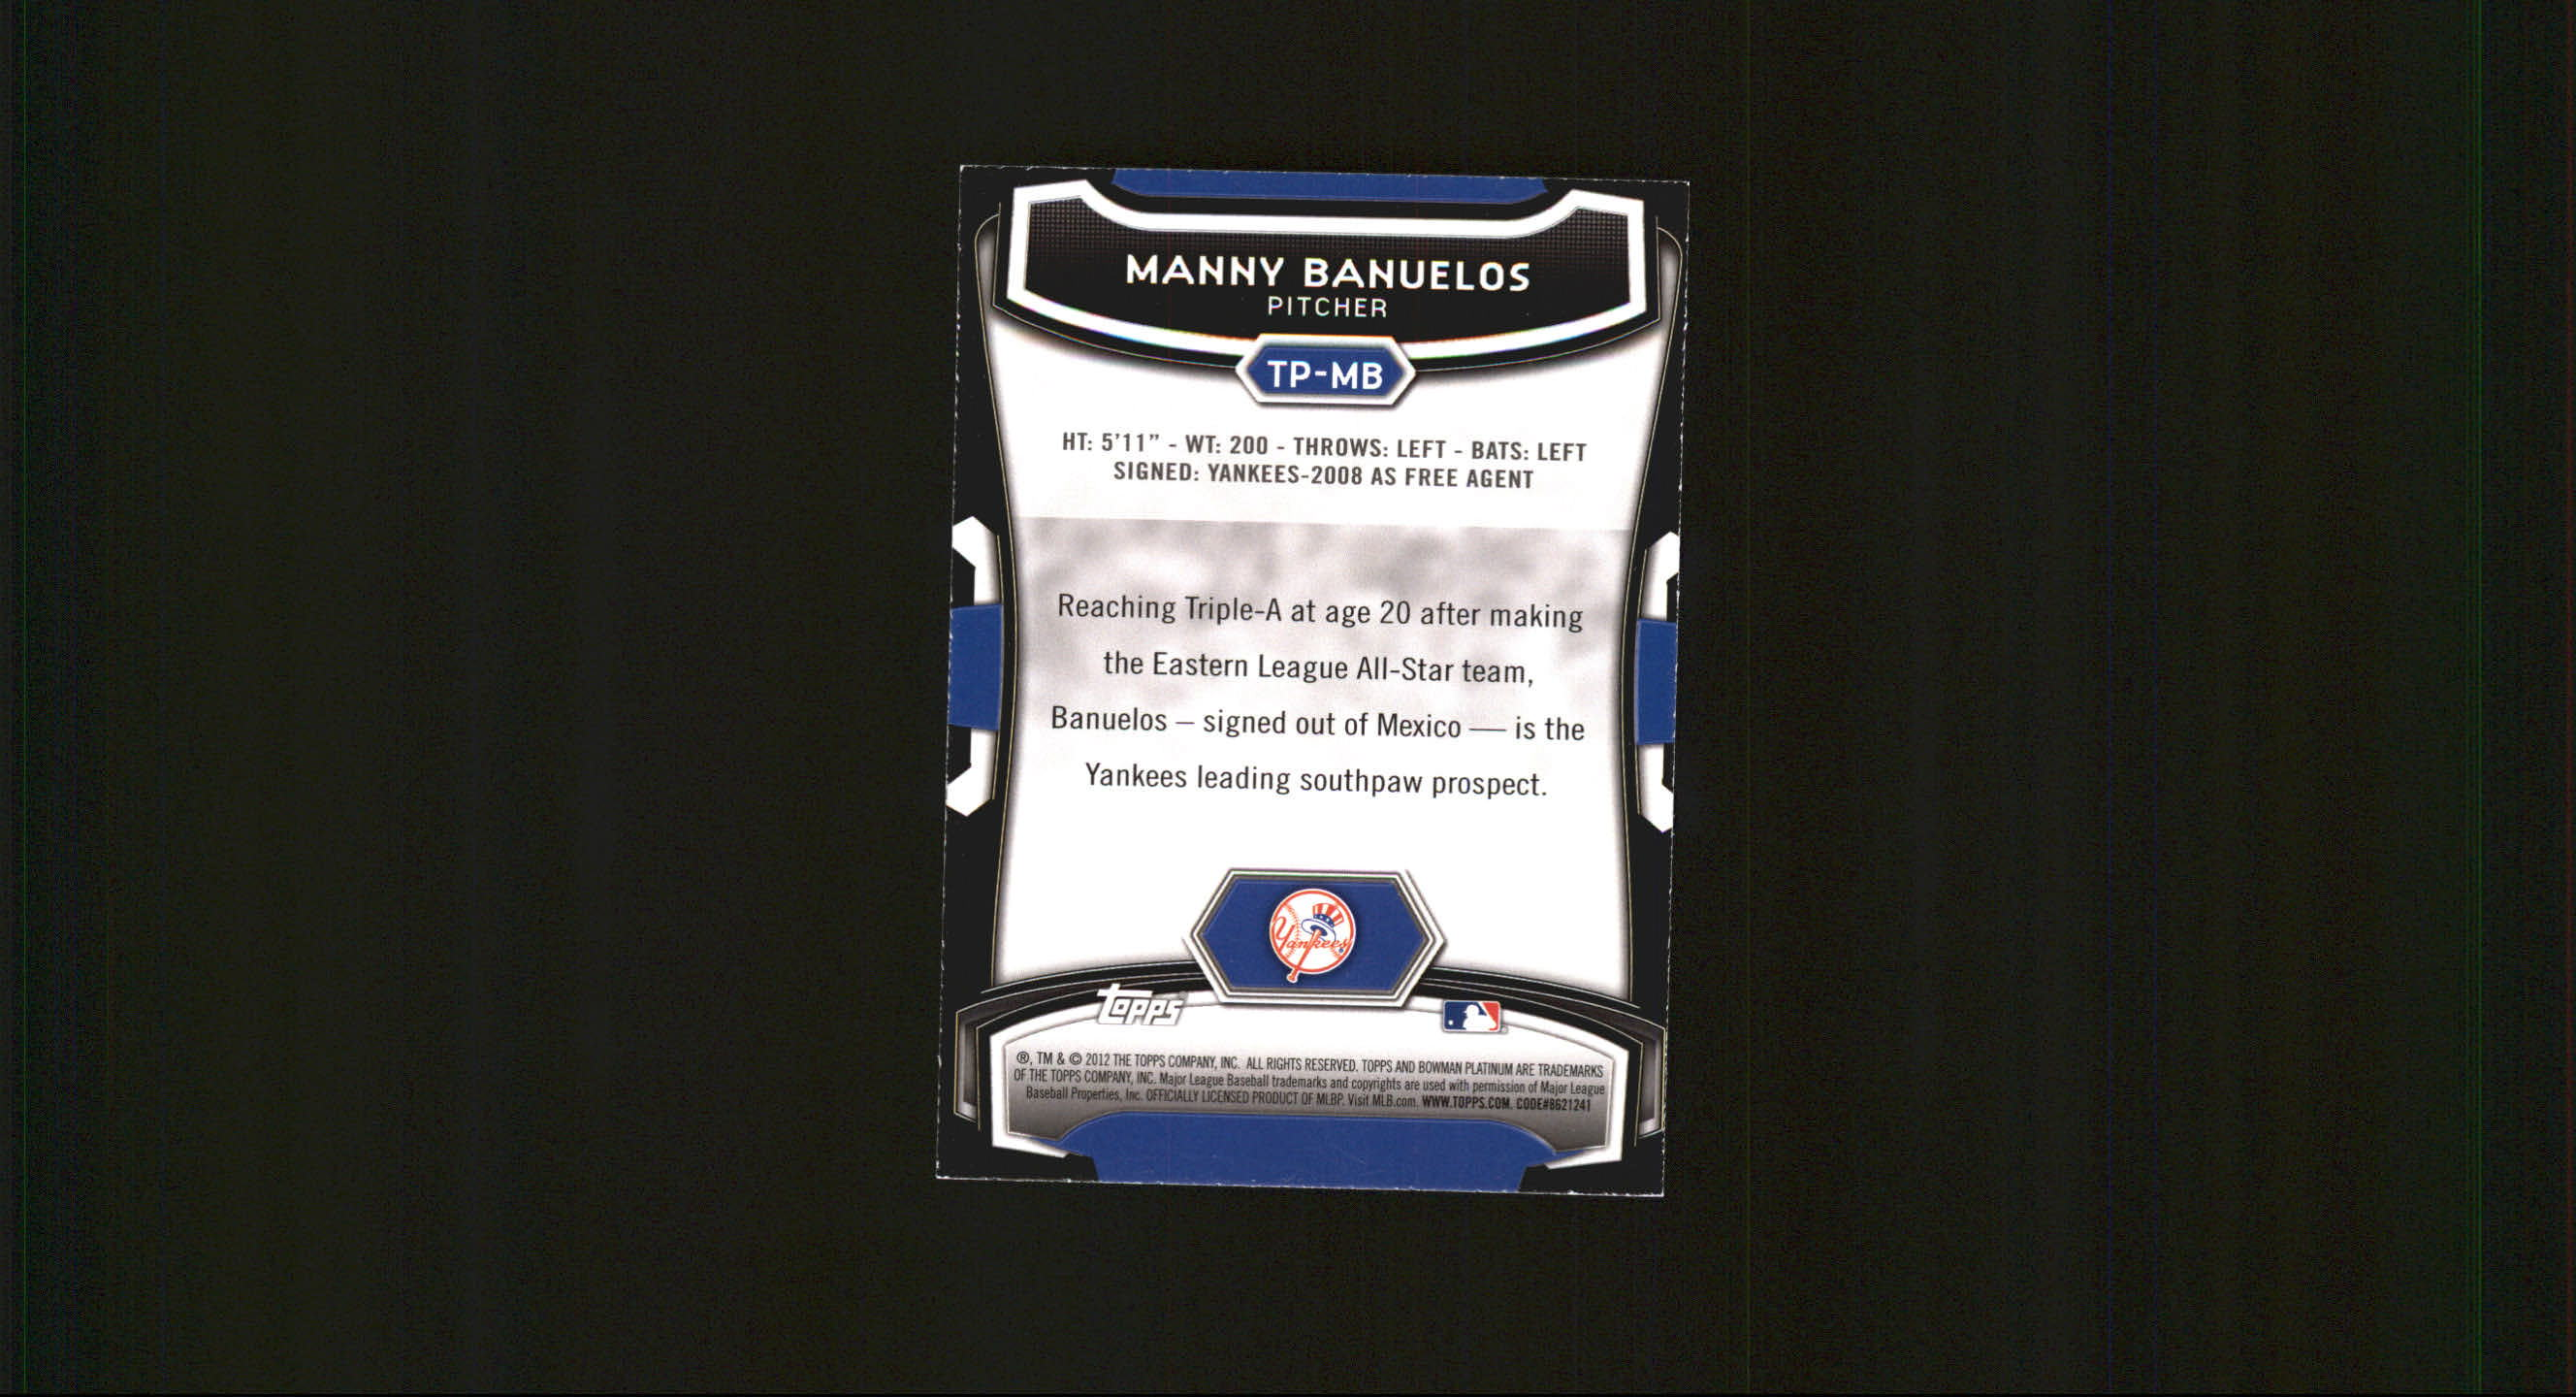 2012 Bowman Platinum Top Prospects #MB Manny Banuelos